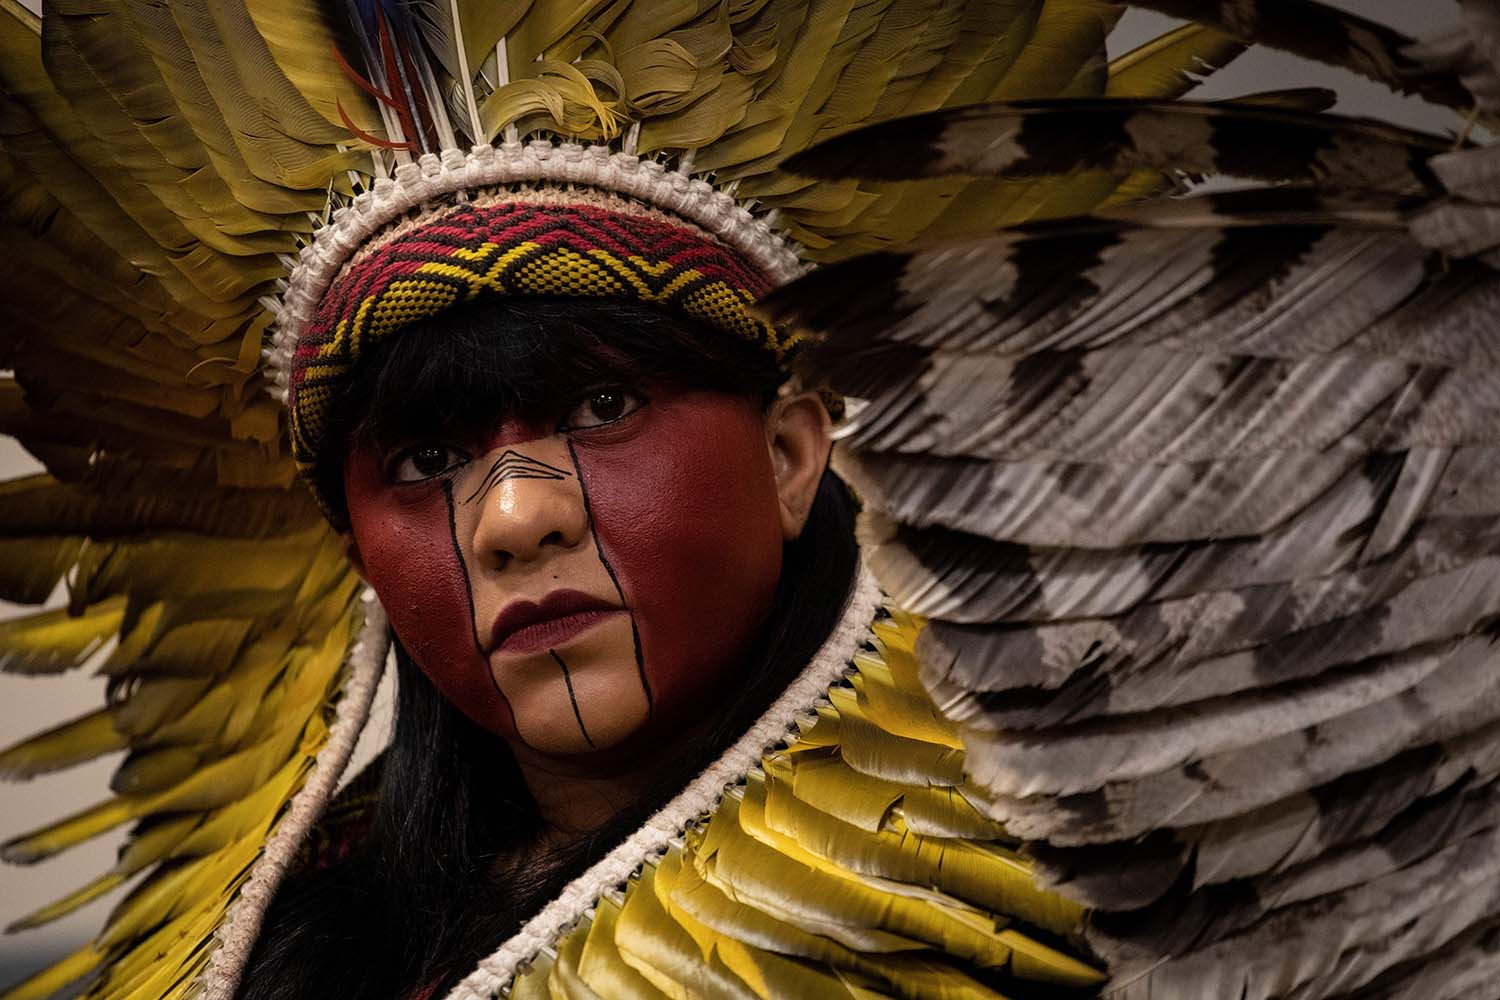 Brazilian Indigenous tribe leader Celia Xakriaba attends a press conference in Paris on Nov. 12, 2019, as part of a tour of 12 European countries calling on EU lawmakers to exert pressure on the Brazilian government to better protect the rights of indigenous communities and for scrutiny of companies profiting from deforestation in the Amazon. THOMAS SAMSON/AFP via Getty Images